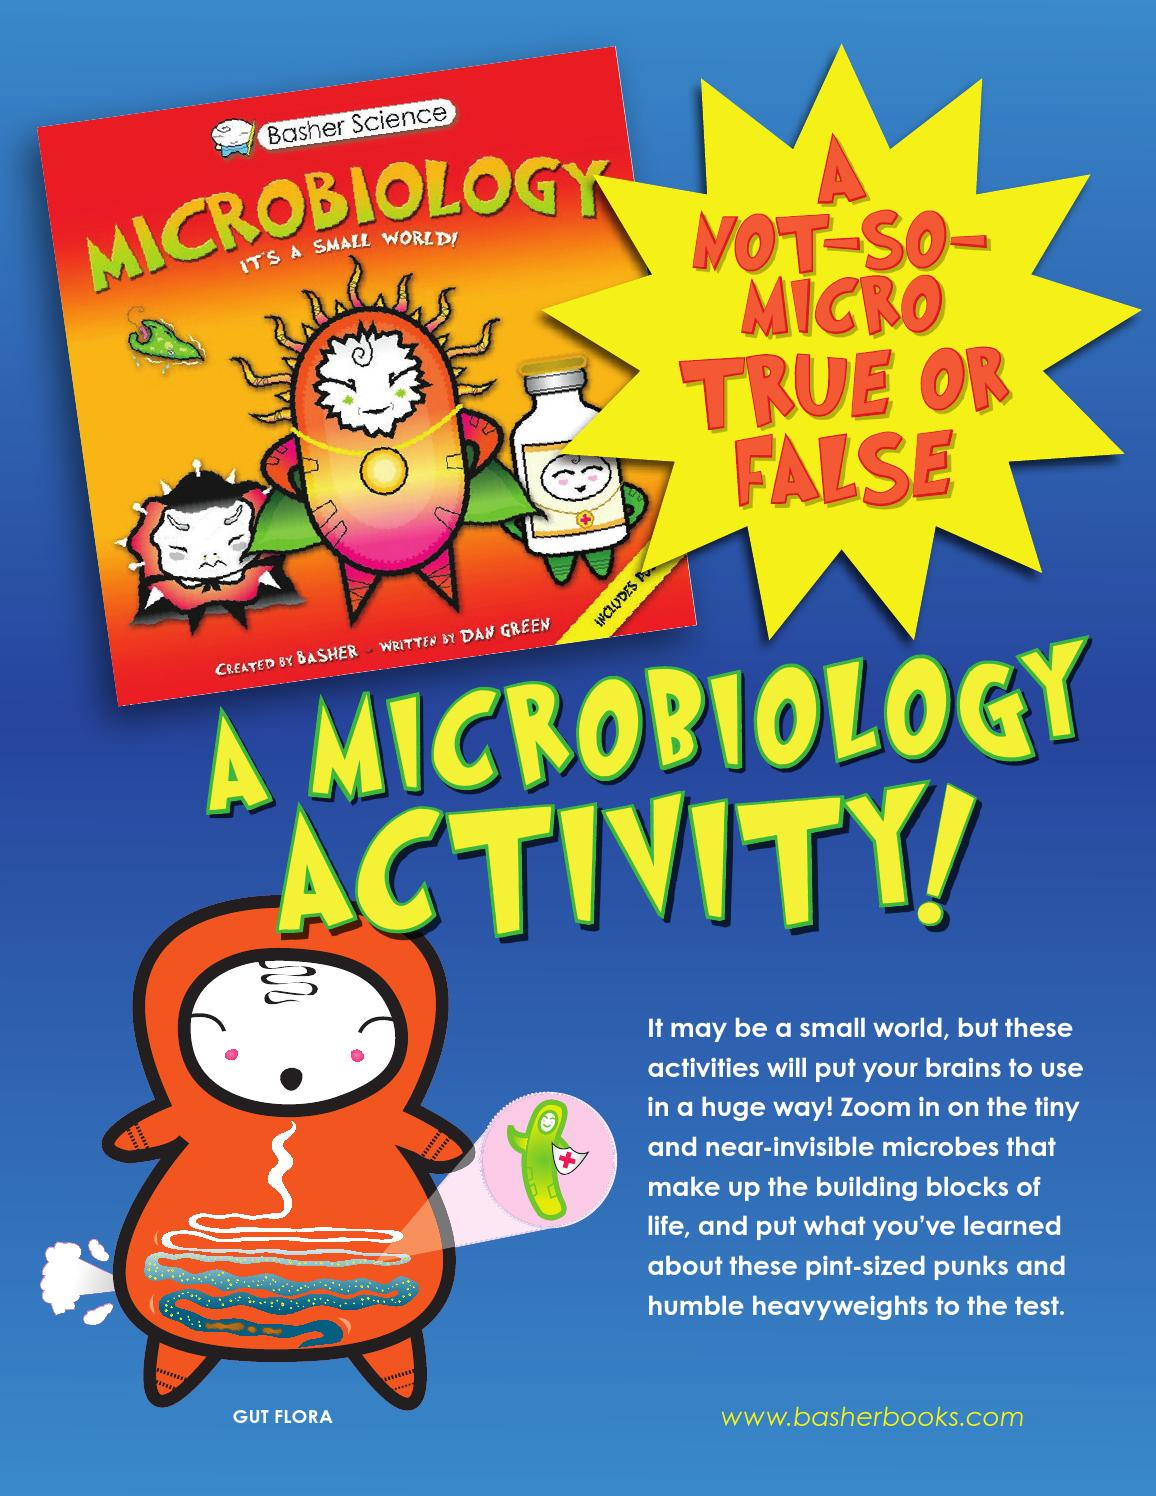 Basher Science: Microbiology Book Activities by Kingfisher - Macmillan -  issuu